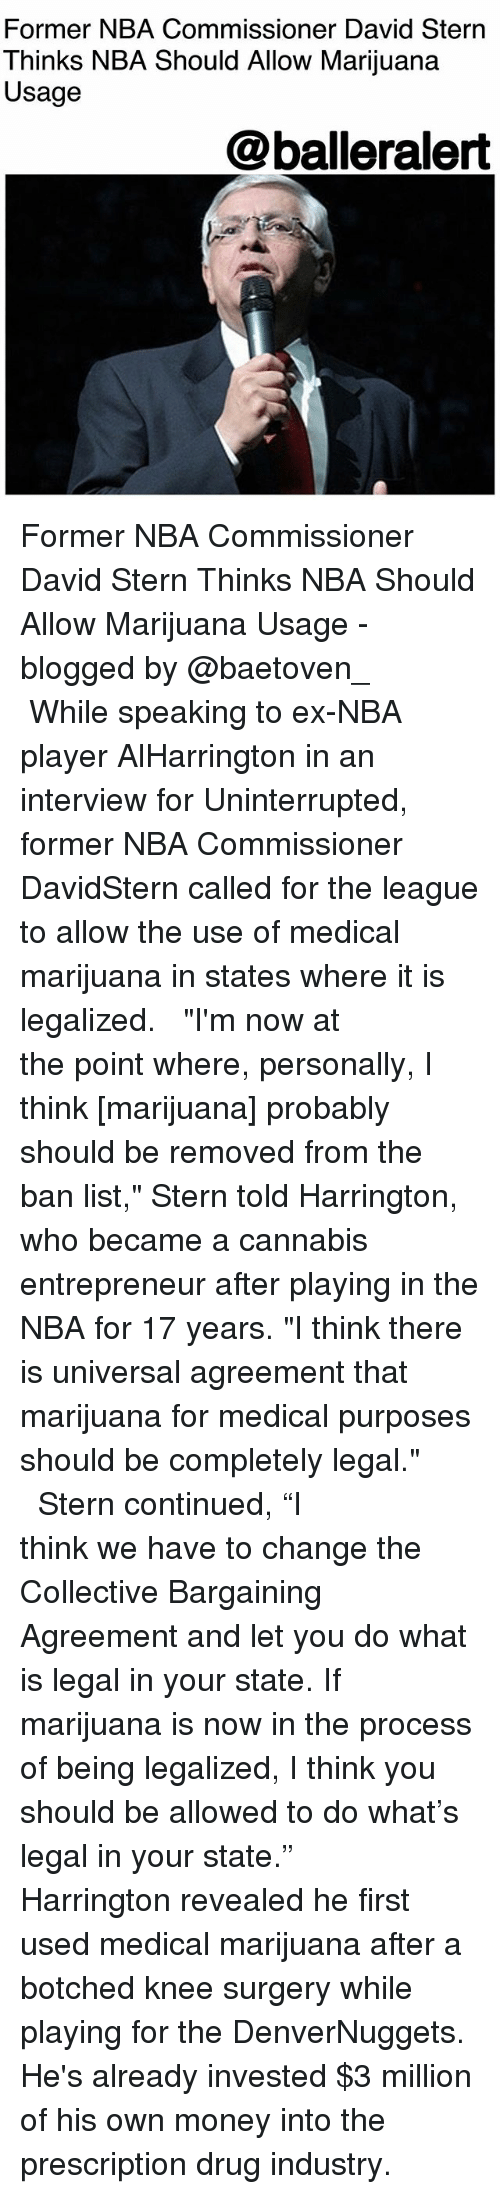 "Memes, Money, and Nba: Former NBA Commissioner David Stern  Thinks NBA Should Allow Marijuana  Usage  @balleralert Former NBA Commissioner David Stern Thinks NBA Should Allow Marijuana Usage - blogged by @baetoven_ ⠀⠀⠀⠀⠀⠀⠀ ⠀⠀⠀⠀⠀⠀⠀ While speaking to ex-NBA player AlHarrington in an interview for Uninterrupted, former NBA Commissioner DavidStern called for the league to allow the use of medical marijuana in states where it is legalized. ⠀⠀⠀⠀⠀⠀⠀ ⠀⠀⠀⠀⠀⠀⠀ ""I'm now at the point where, personally, I think [marijuana] probably should be removed from the ban list,"" Stern told Harrington, who became a cannabis entrepreneur after playing in the NBA for 17 years. ""I think there is universal agreement that marijuana for medical purposes should be completely legal."" ⠀⠀⠀⠀⠀⠀⠀ ⠀⠀⠀⠀⠀⠀⠀ Stern continued, ""I think we have to change the Collective Bargaining Agreement and let you do what is legal in your state. If marijuana is now in the process of being legalized, I think you should be allowed to do what's legal in your state."" ⠀⠀⠀⠀⠀⠀⠀ ⠀⠀⠀⠀⠀⠀⠀ Harrington revealed he first used medical marijuana after a botched knee surgery while playing for the DenverNuggets. He's already invested $3 million of his own money into the prescription drug industry."